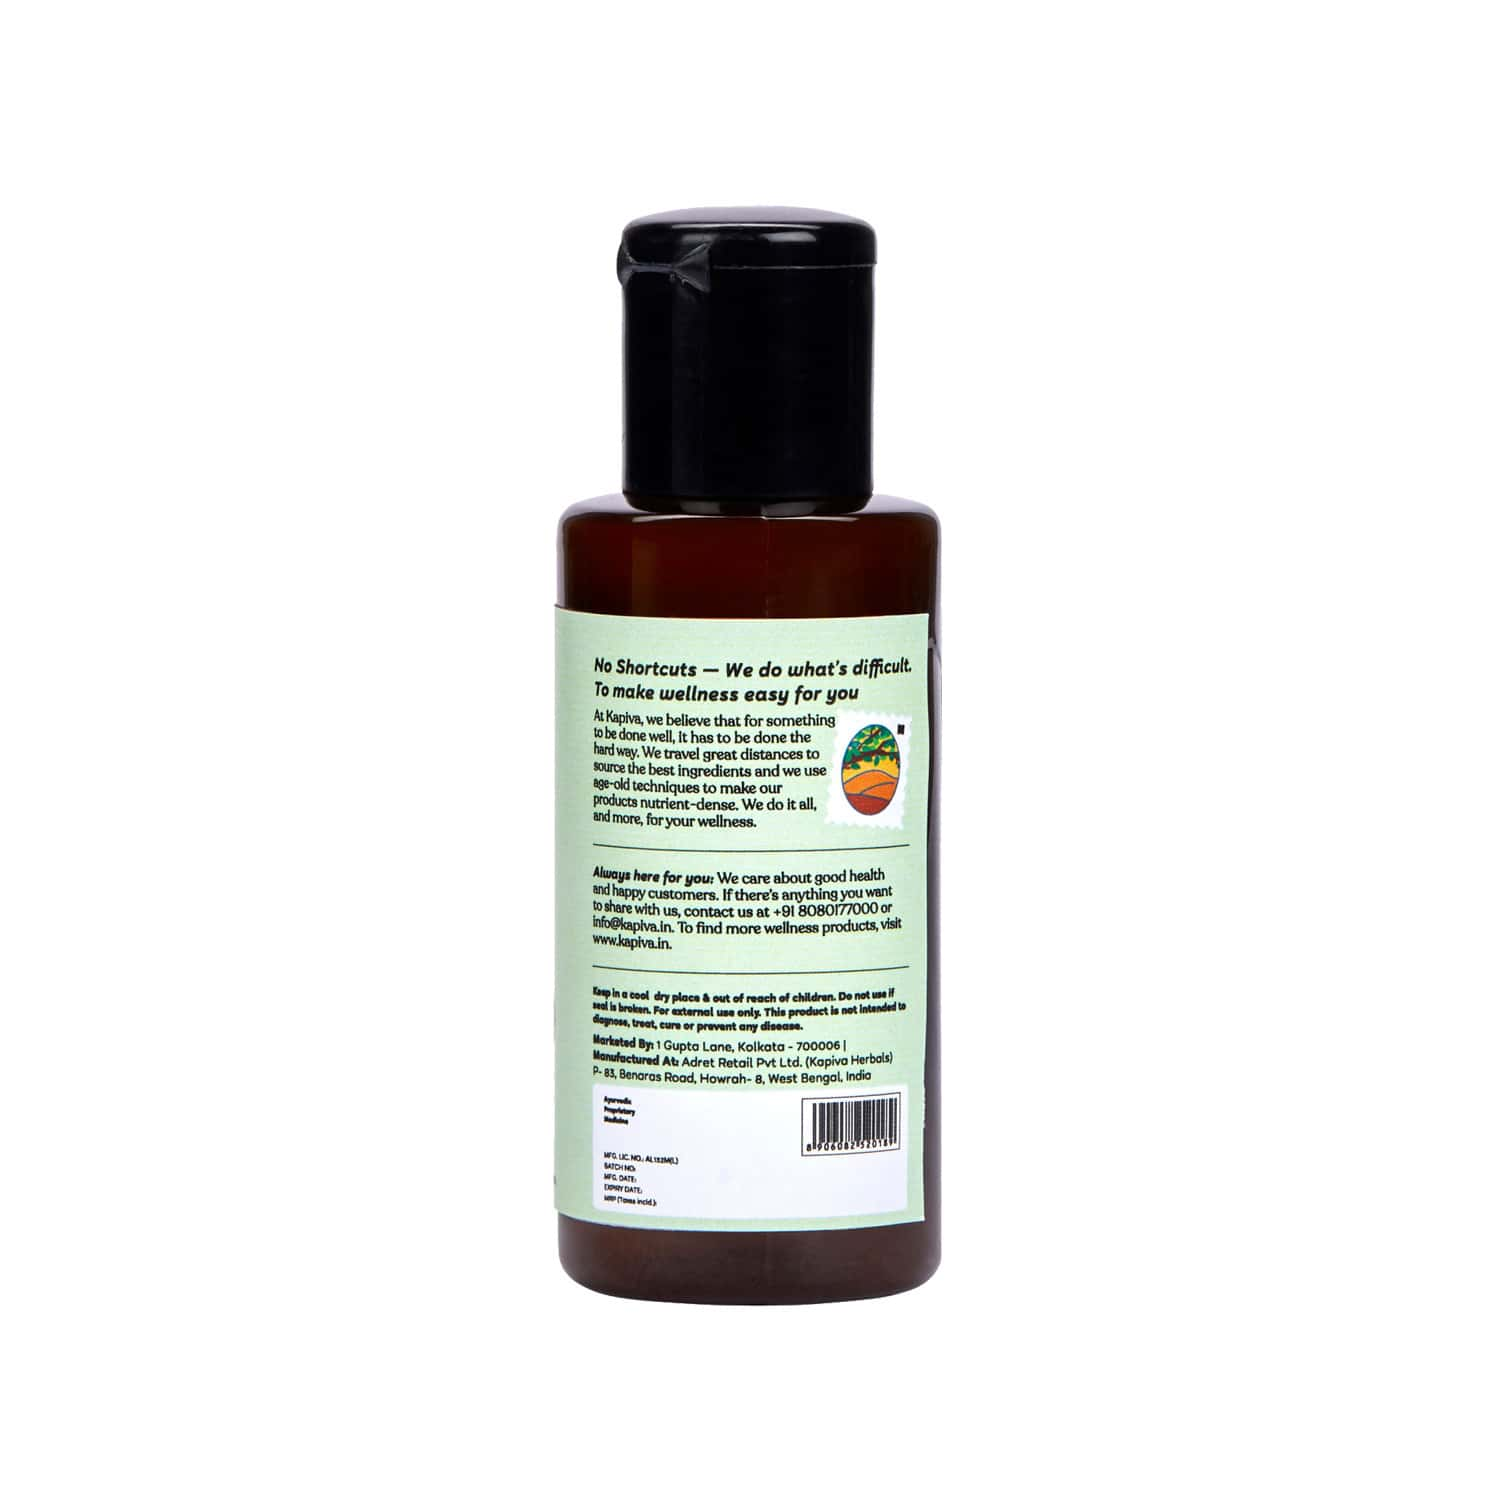 Kapiva Artho Sure Oil 100 Ml Joint Pain Reliever - 100% Natural